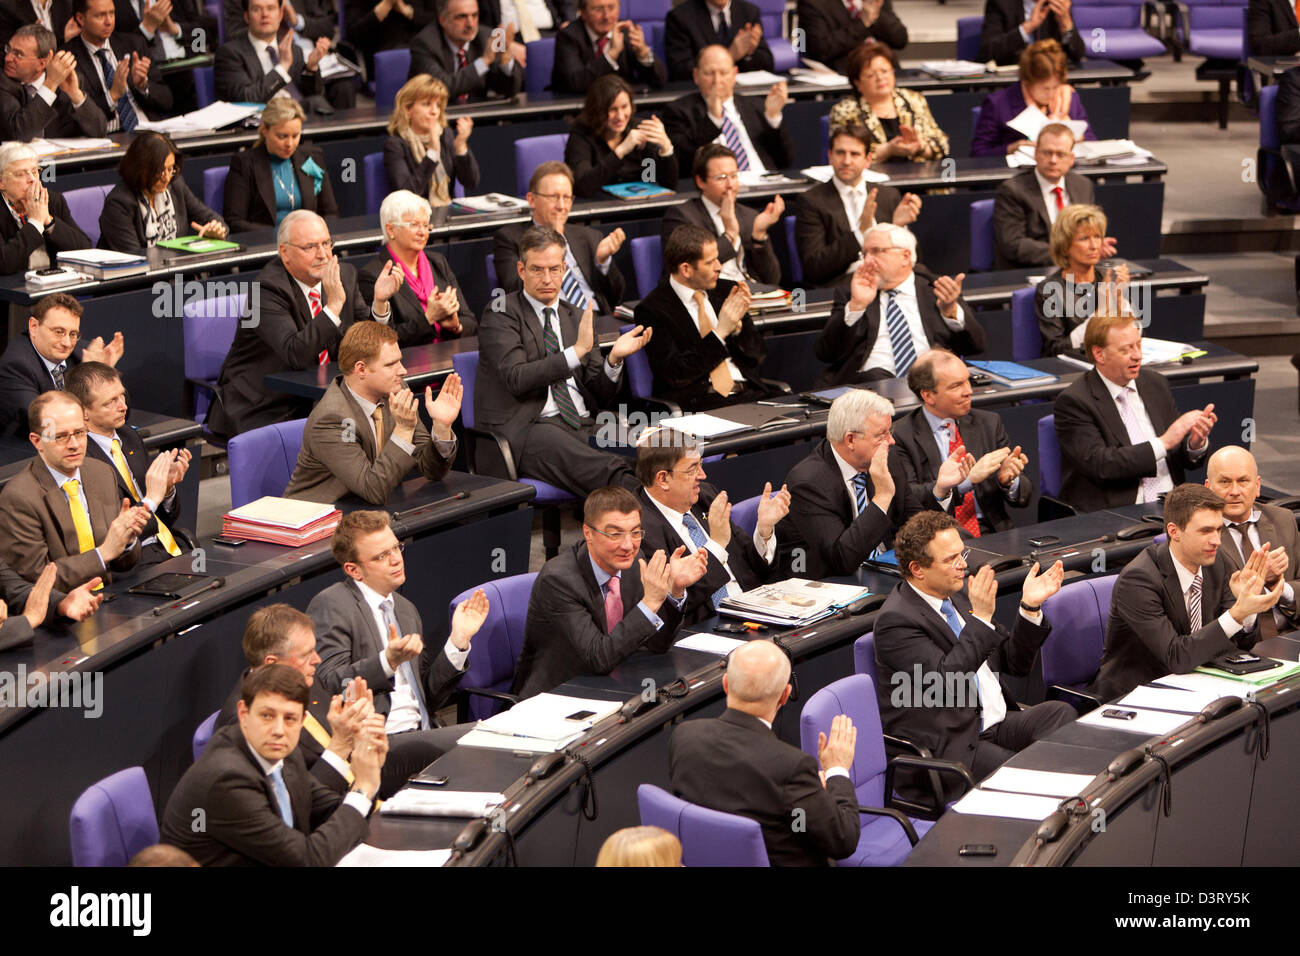 Berlin, Germany, in parliament at question time to the Bundestag Guttenberg Plagiatsvorwuerfen - Stock Image